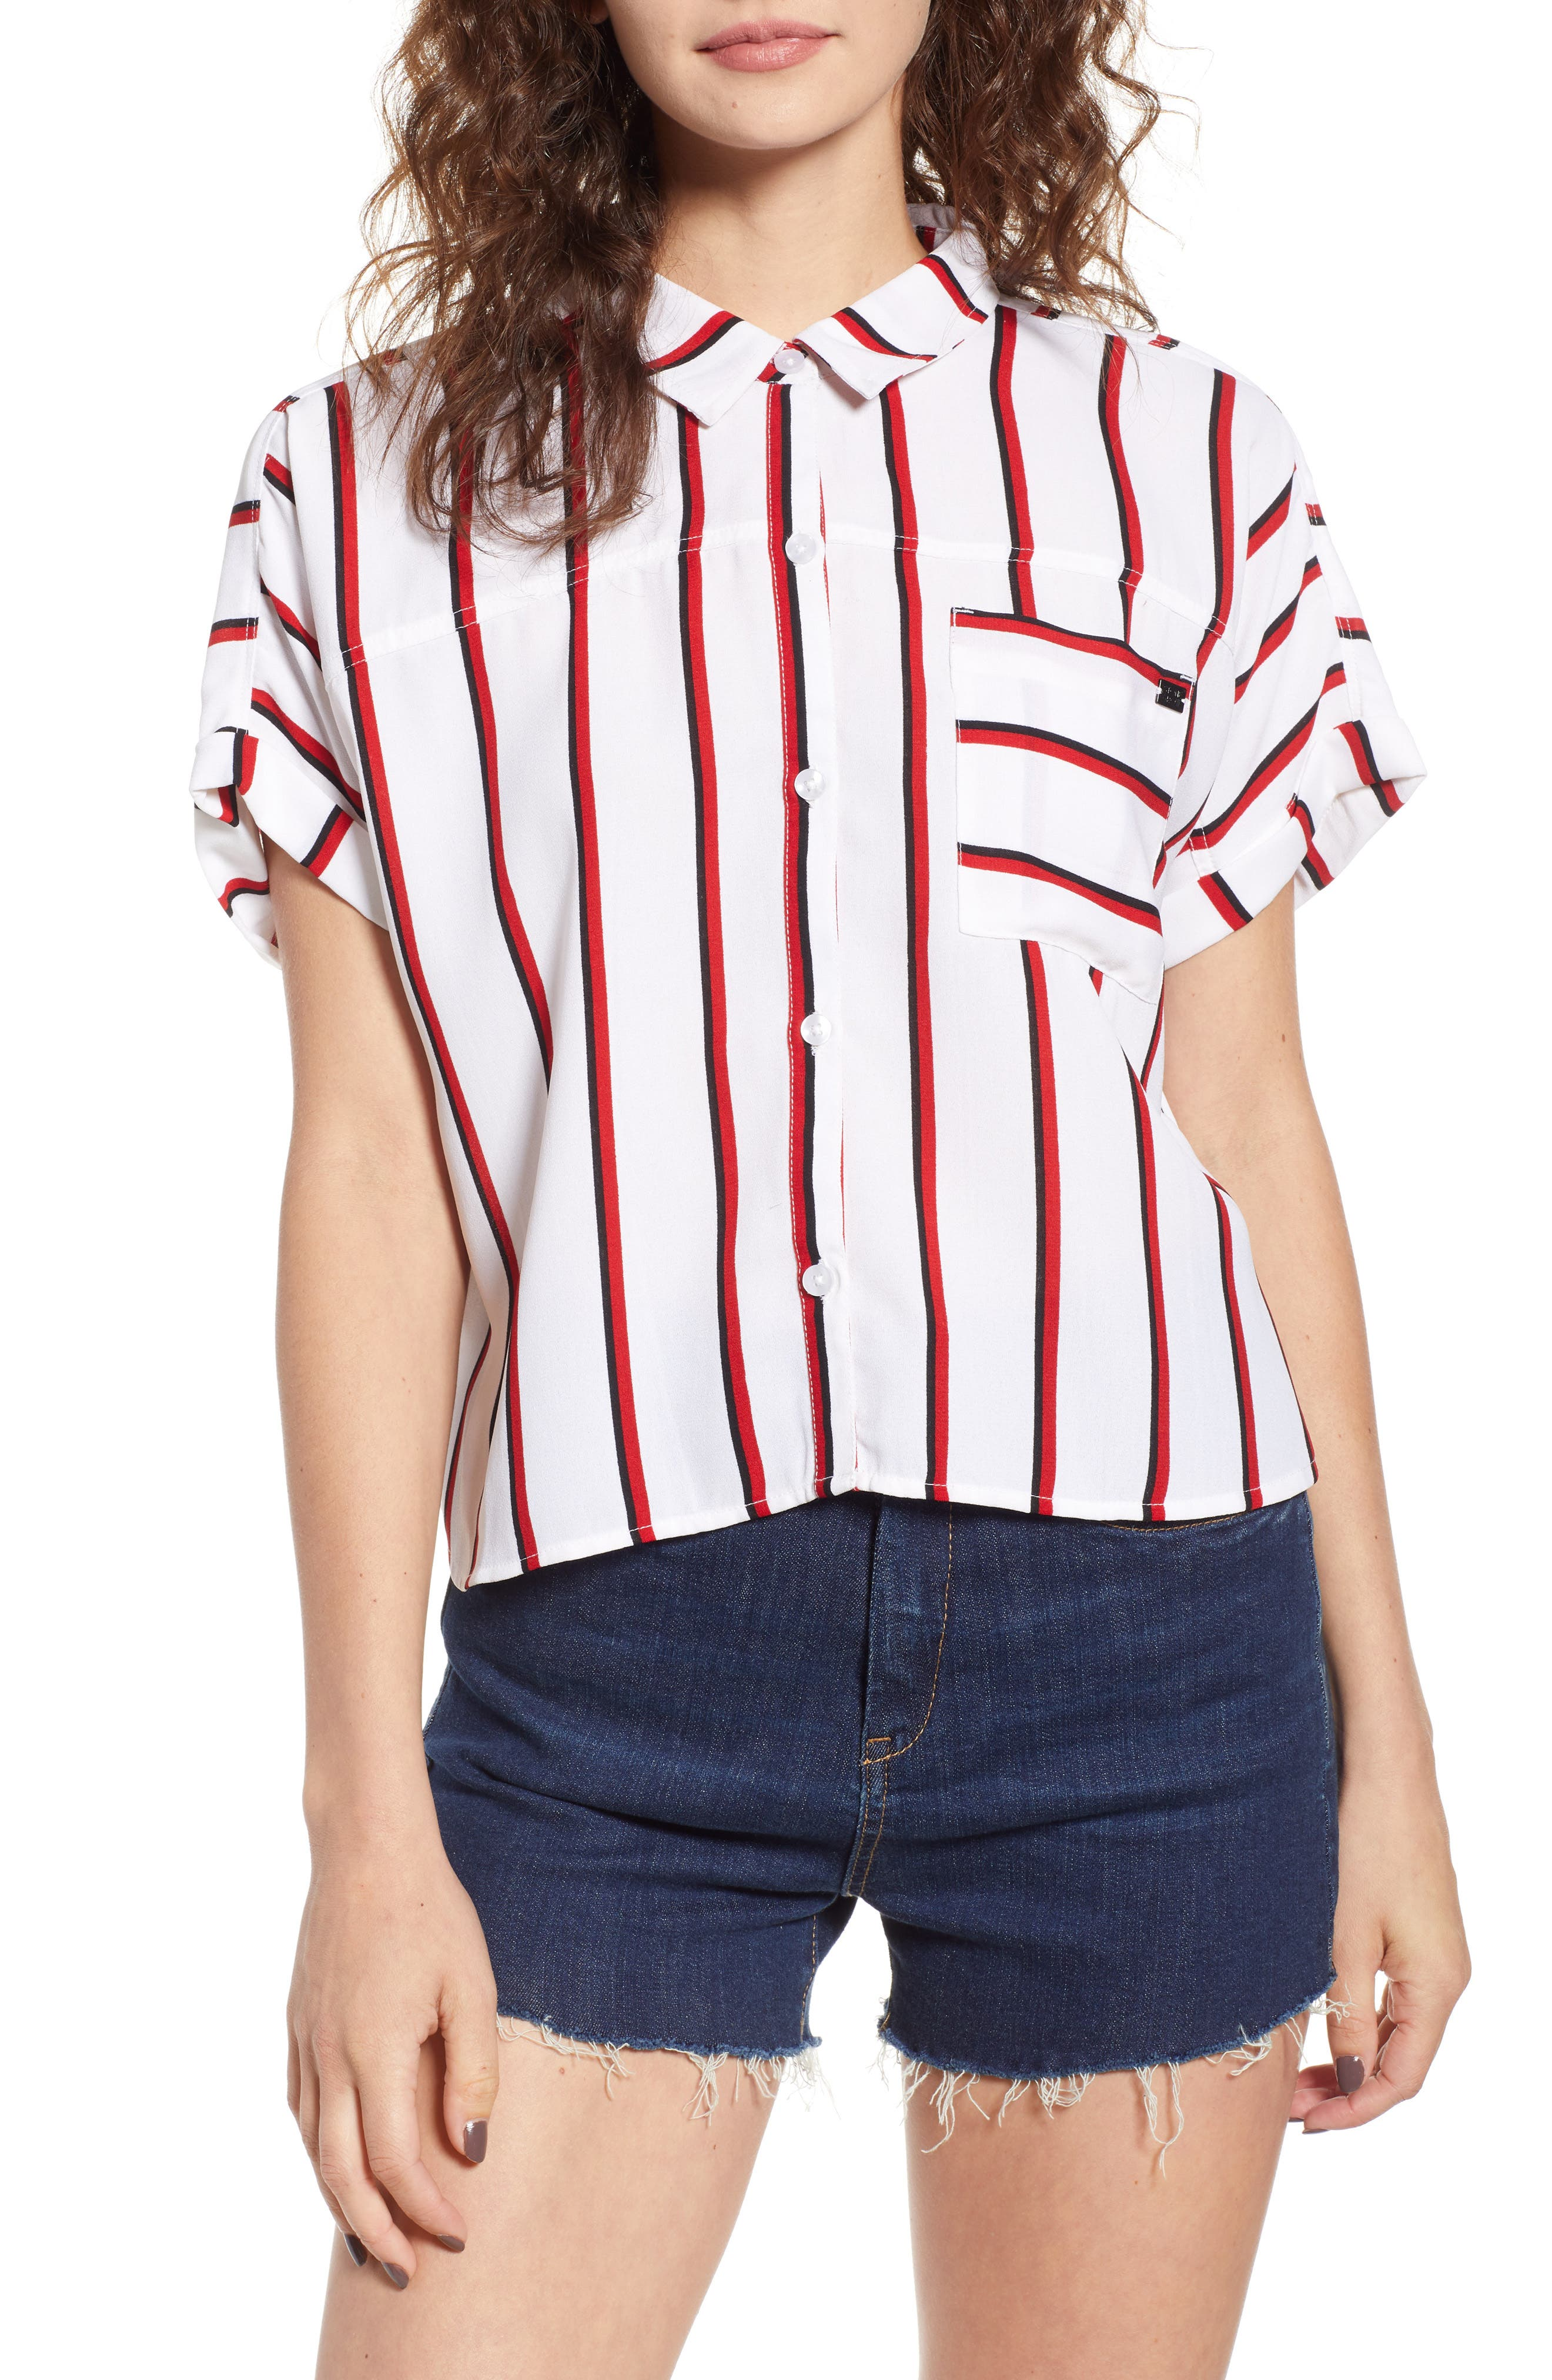 Counting Moons Stripe Top,                             Main thumbnail 1, color,                             600